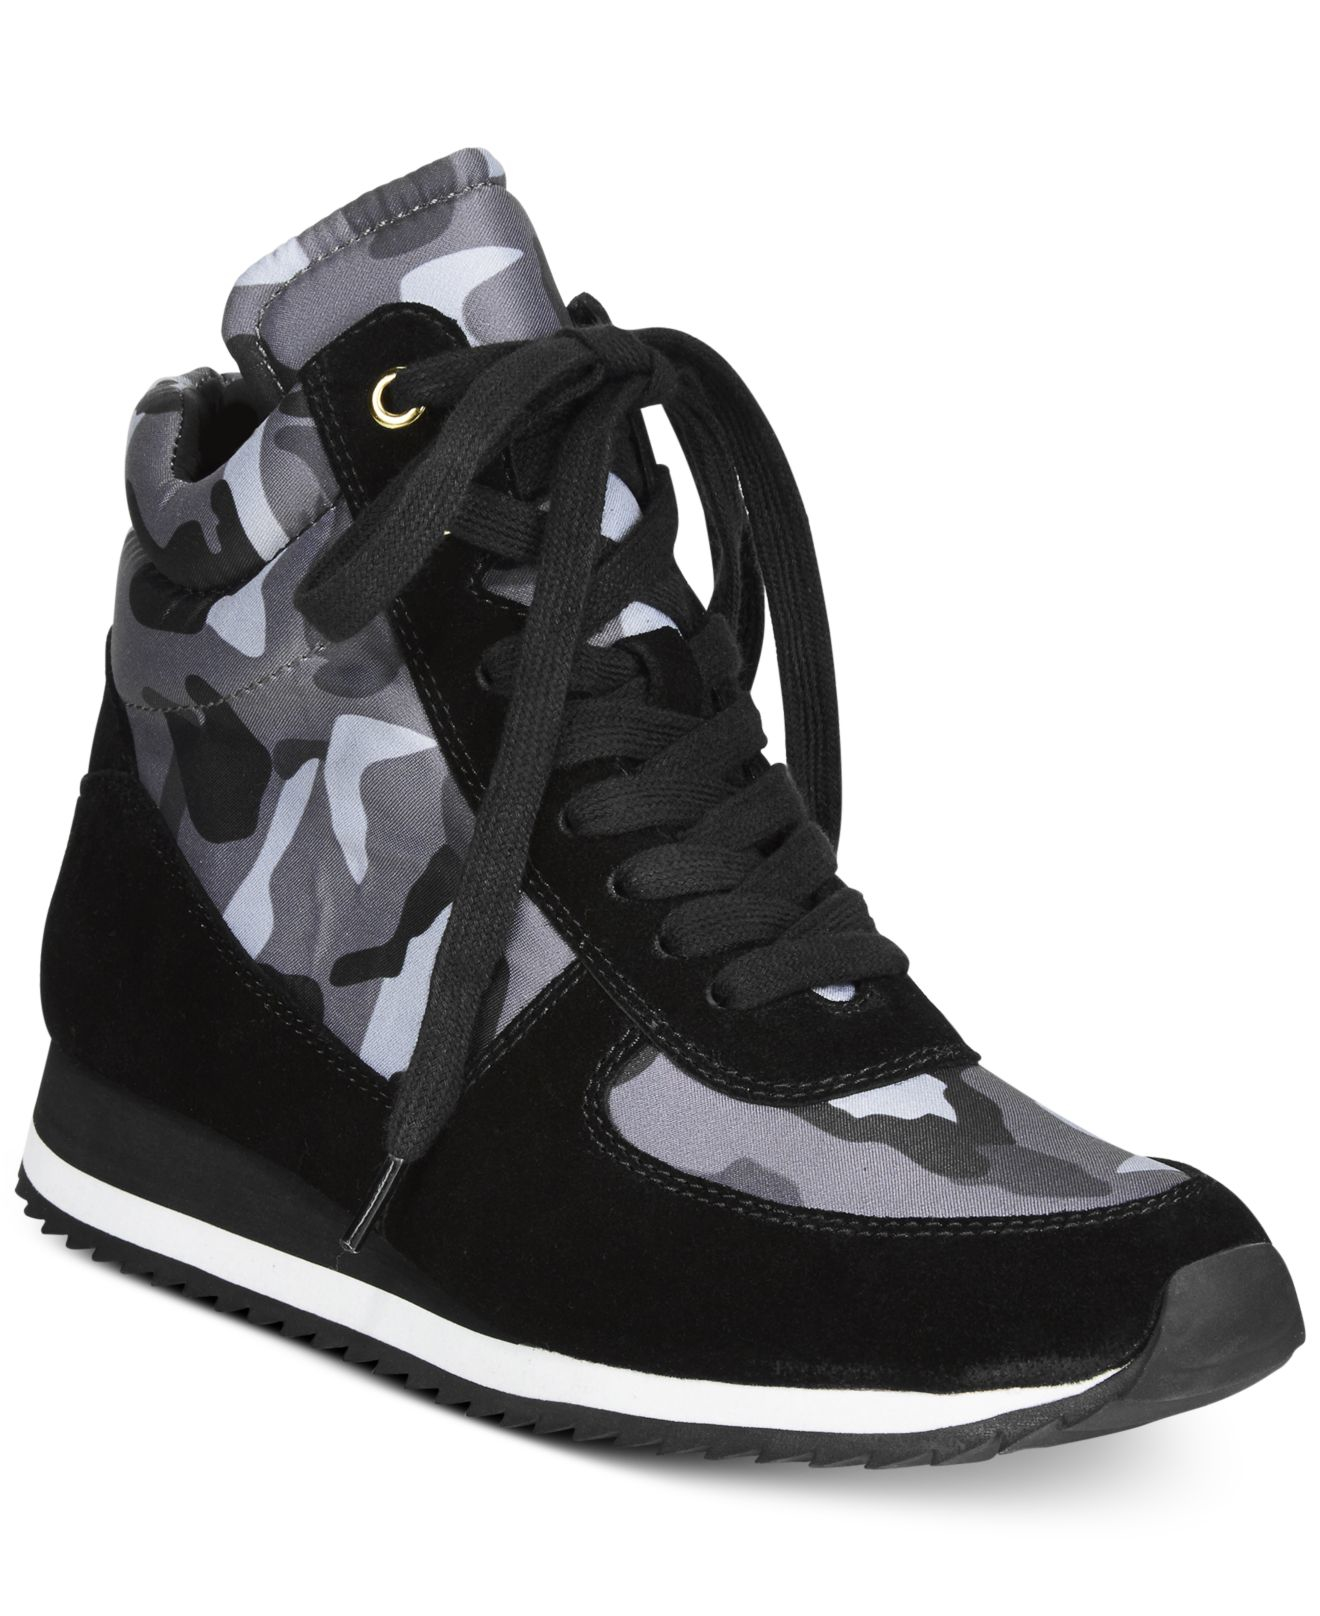 bella vita enice high top sneakers in black black camo lyst. Black Bedroom Furniture Sets. Home Design Ideas